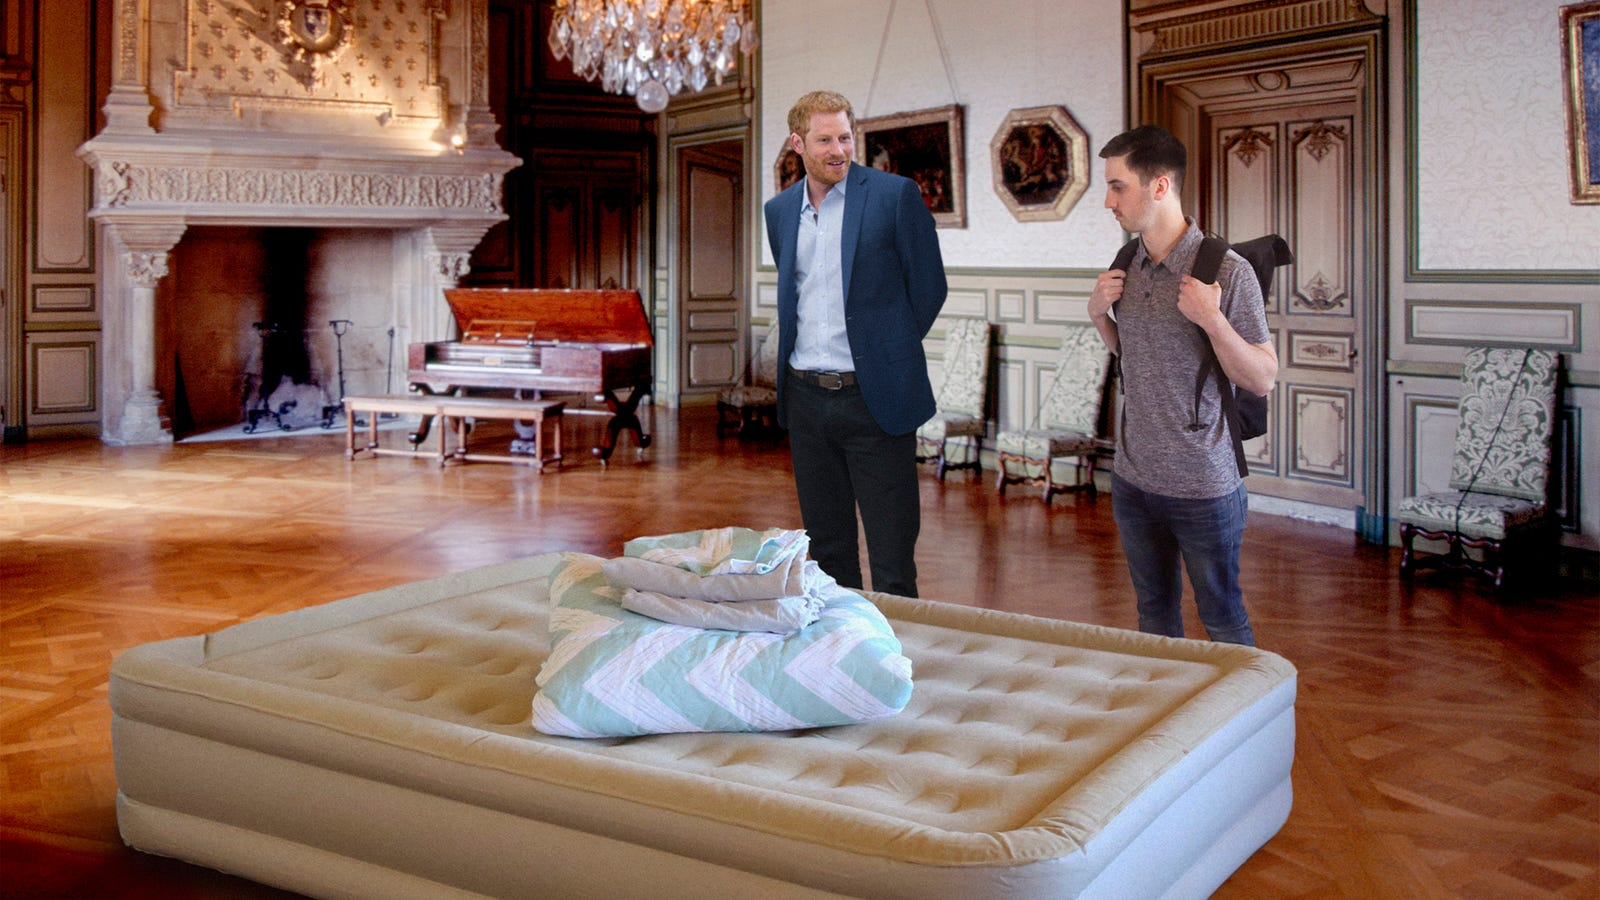 Prince Harry Shows Guest To Air Mattress In Corner Of Windsor Castle